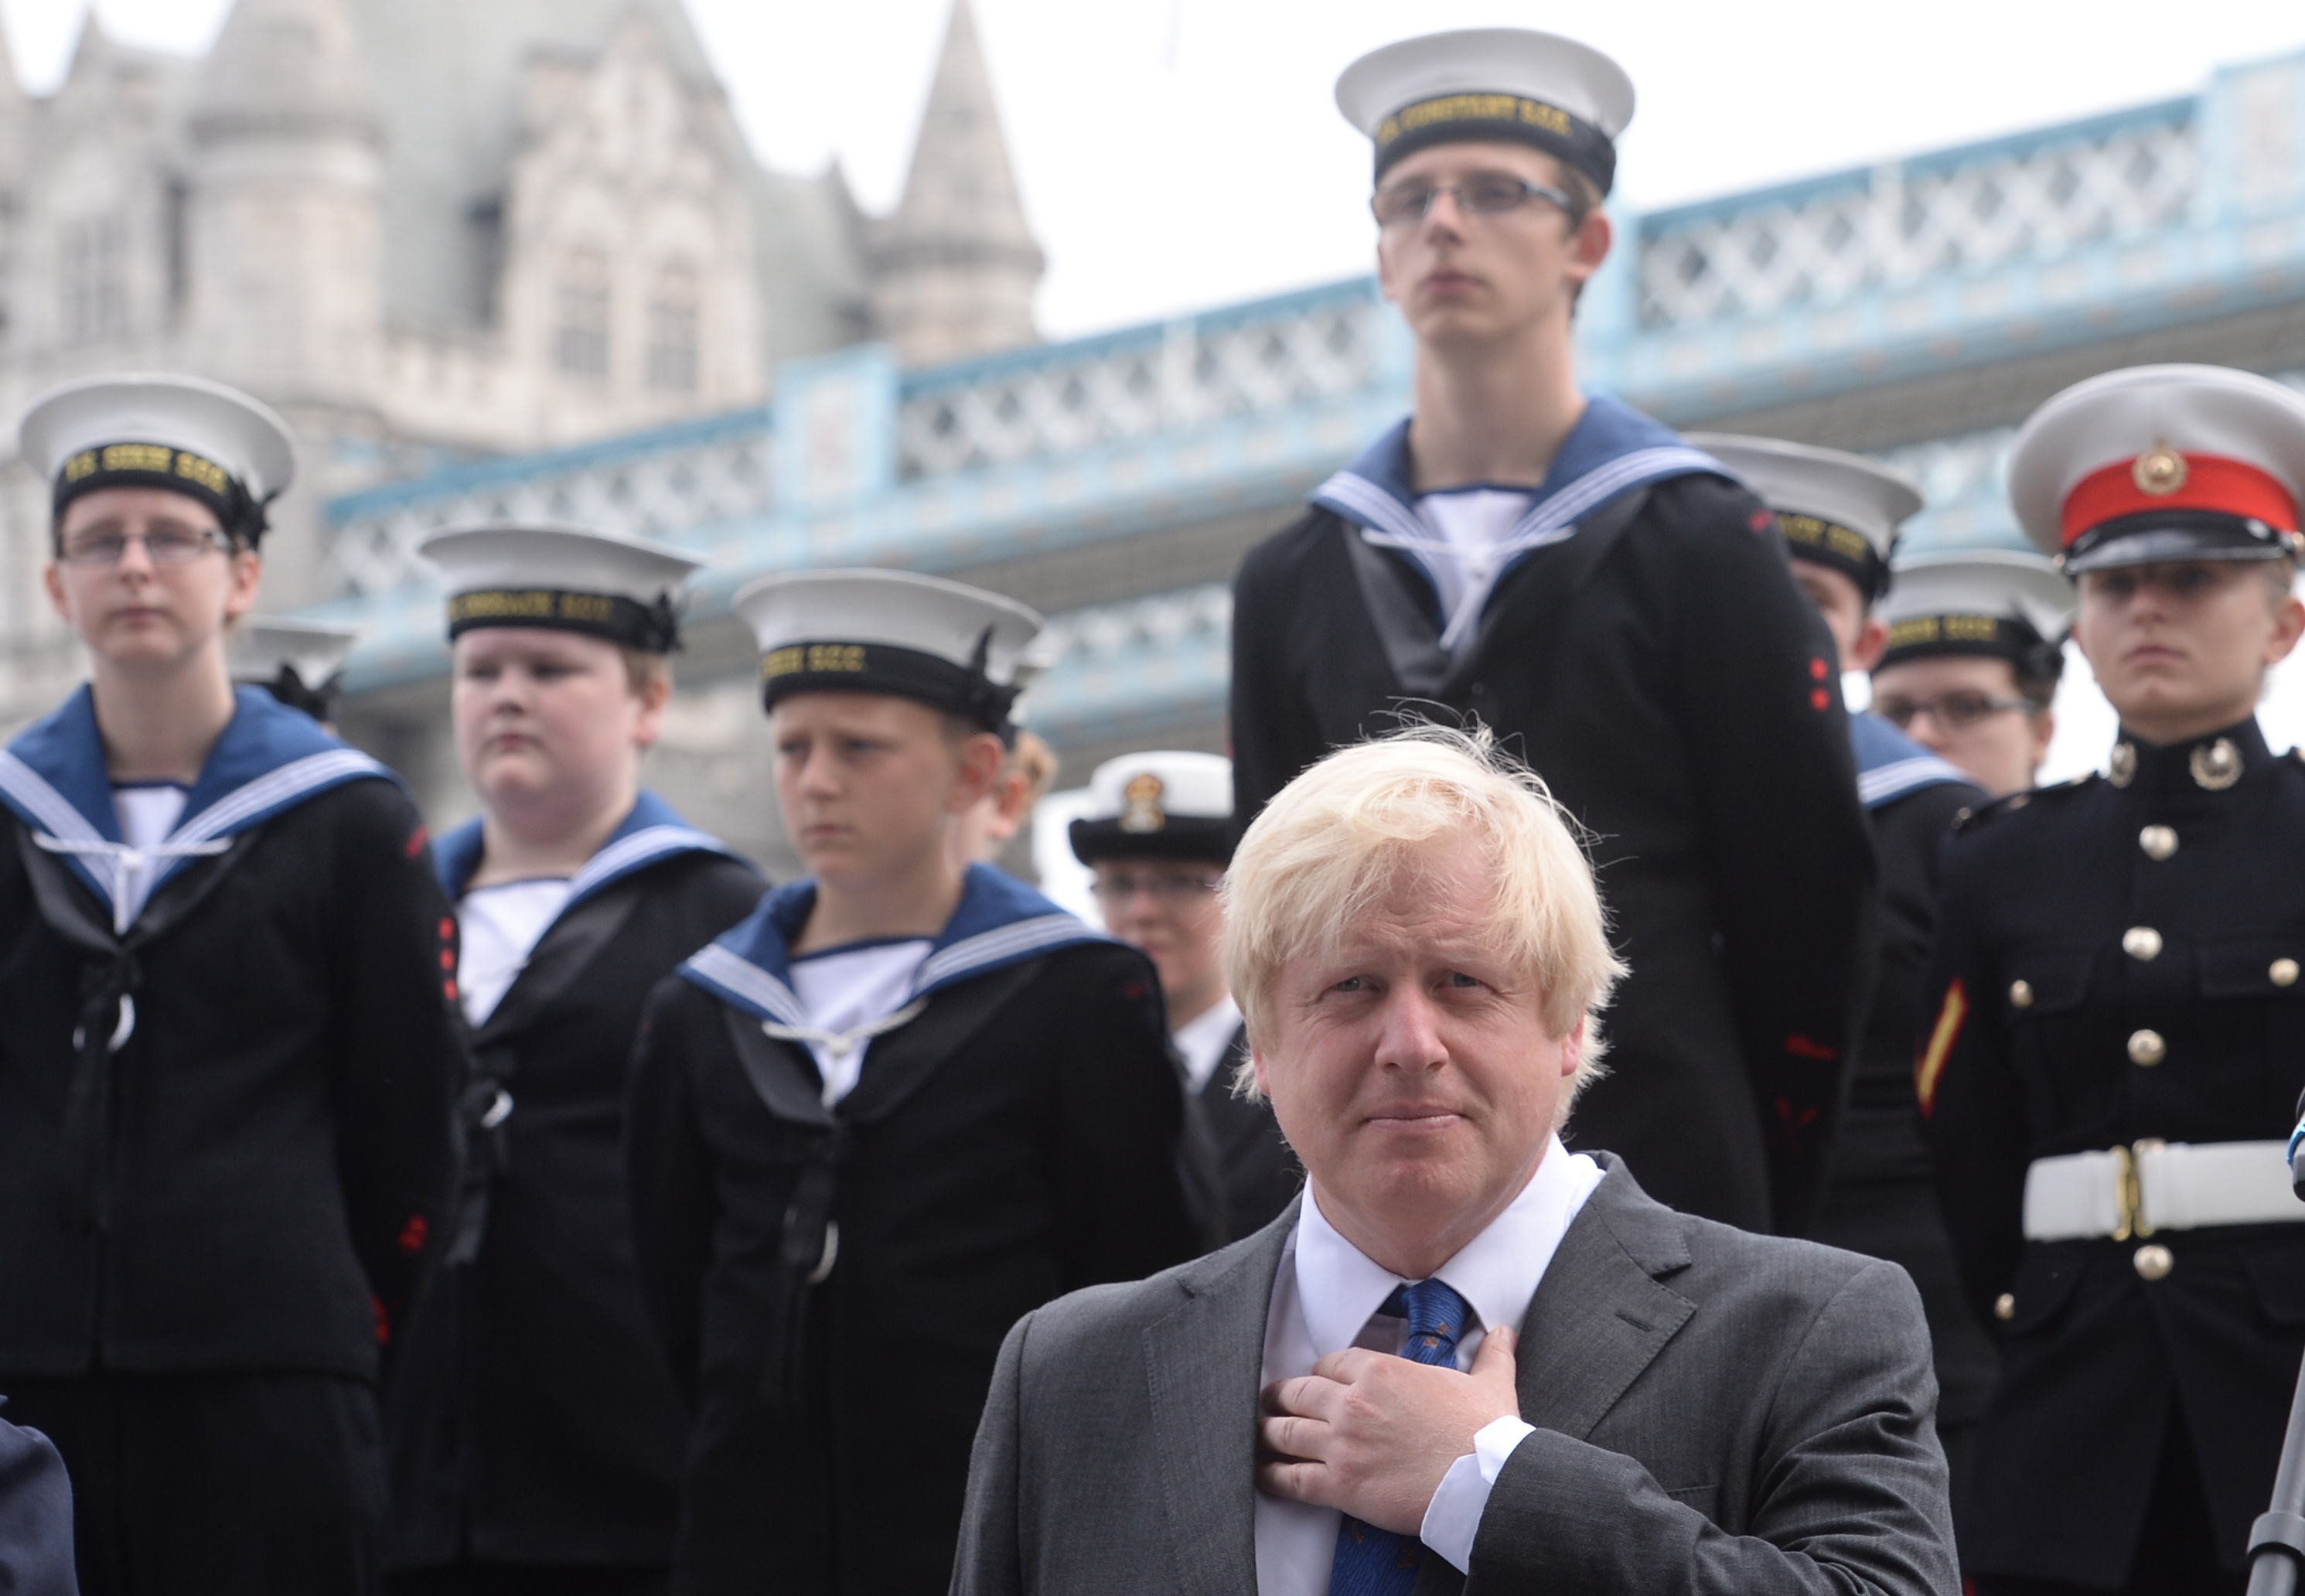 Mayor of London Boris Johnson attends a flag raising ceremony outside City Hall ahead of National Armed Forces Day on Saturday.